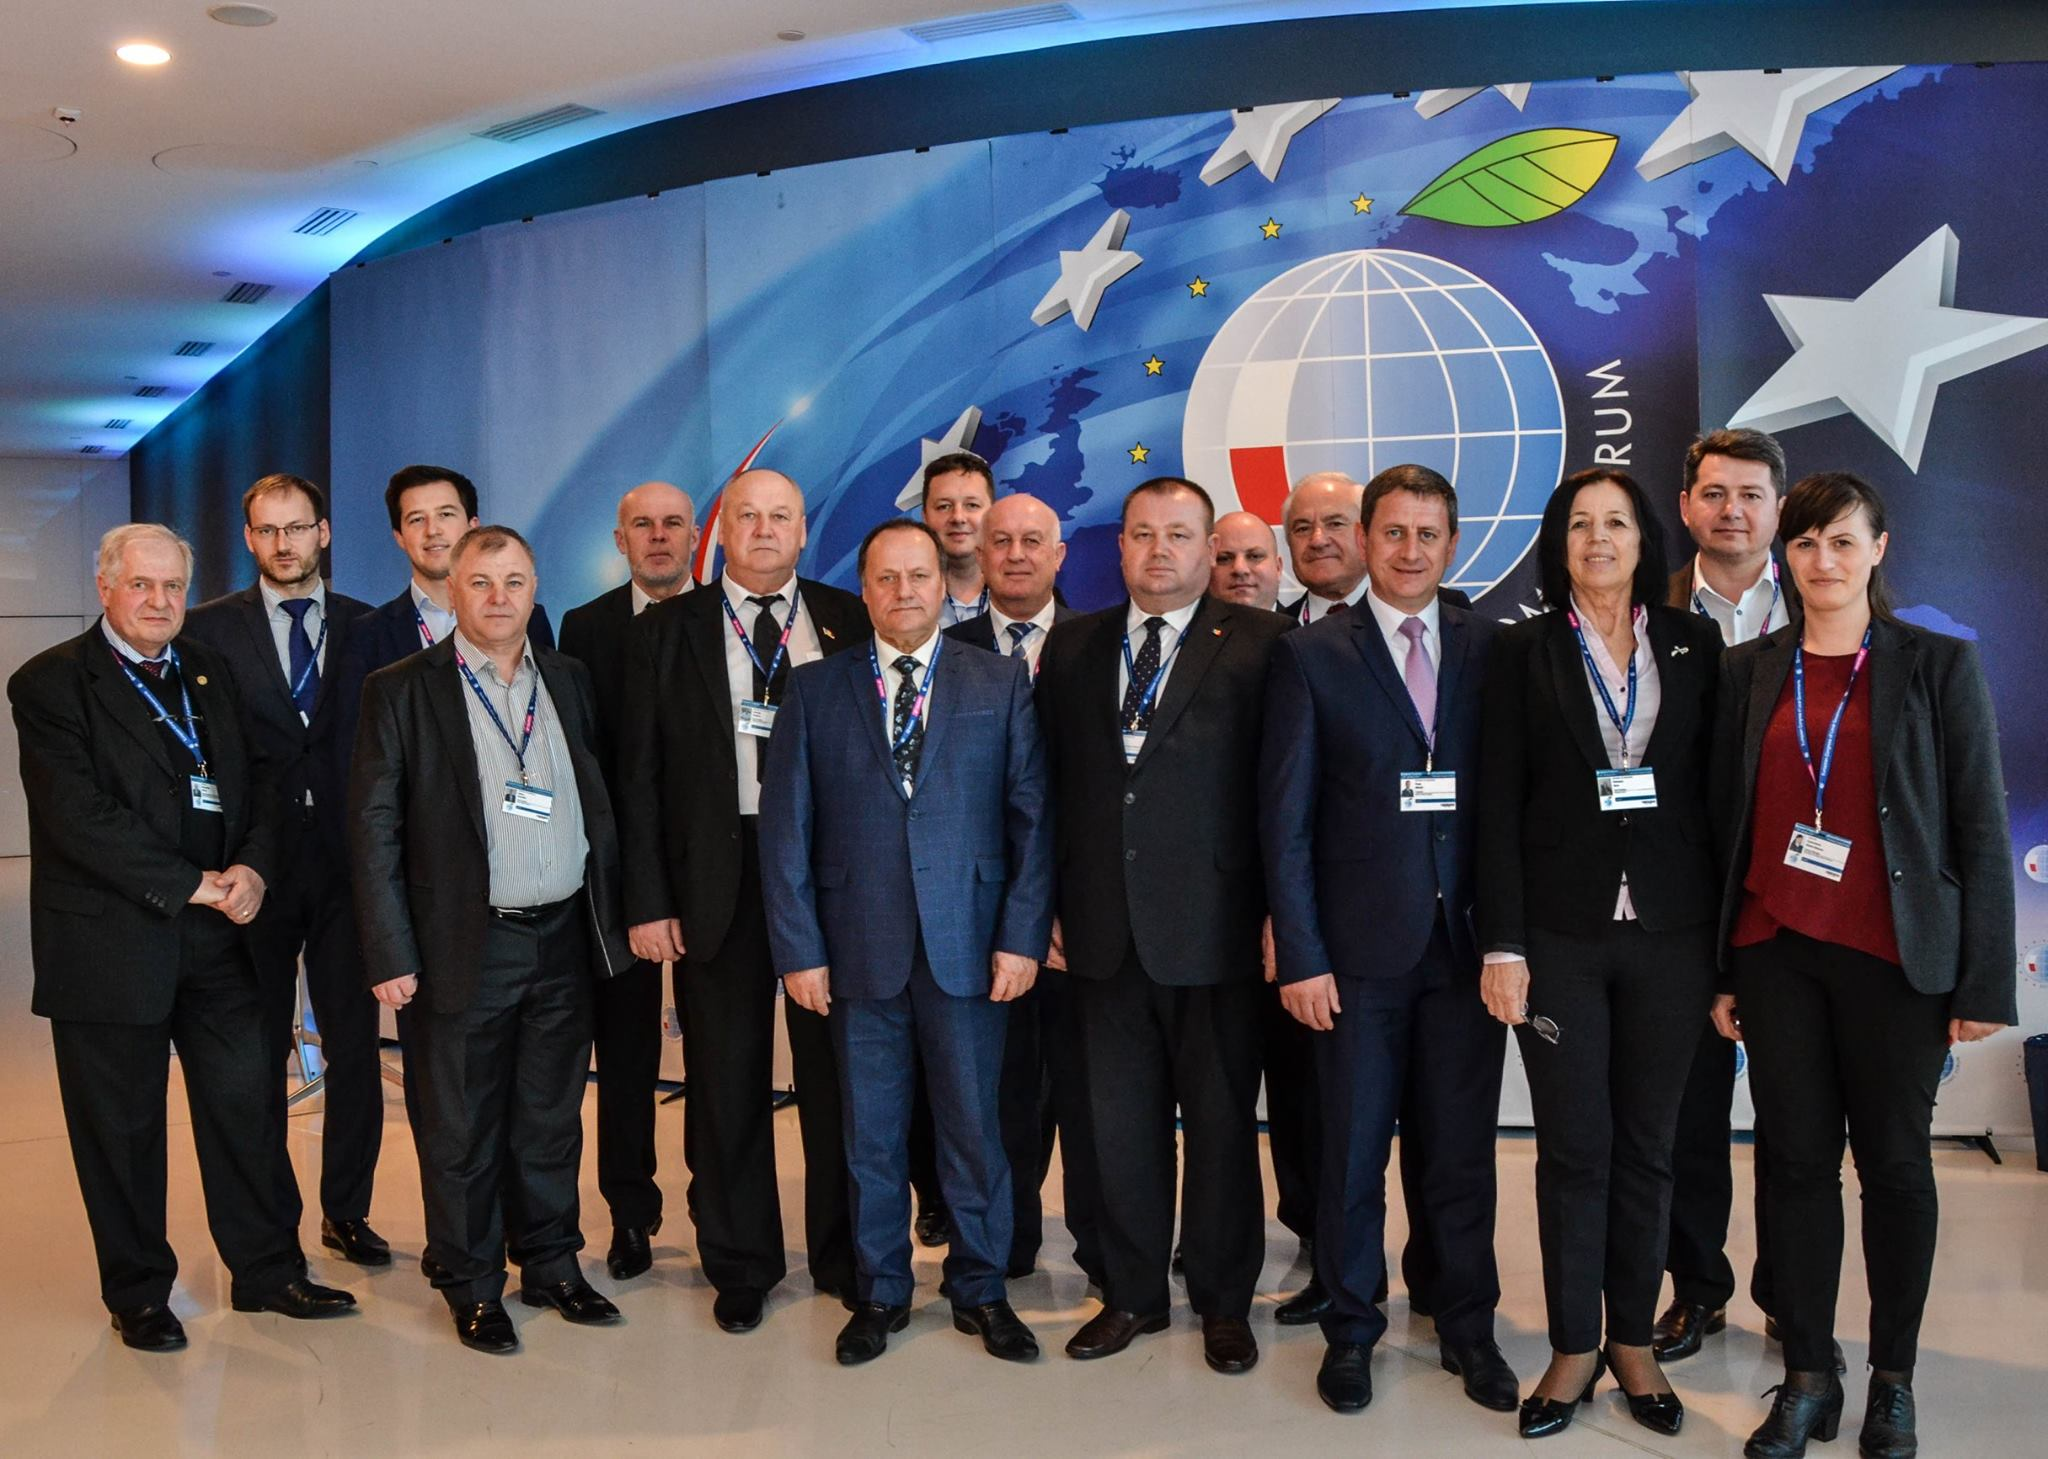 "<a class=""amazingslider-posttitle-link"" href=""https://www.euroregiune.org/en/second-day-congress-local-authorities/"" target=""_self"">The second day of the Congress of Local Authorities</a>"